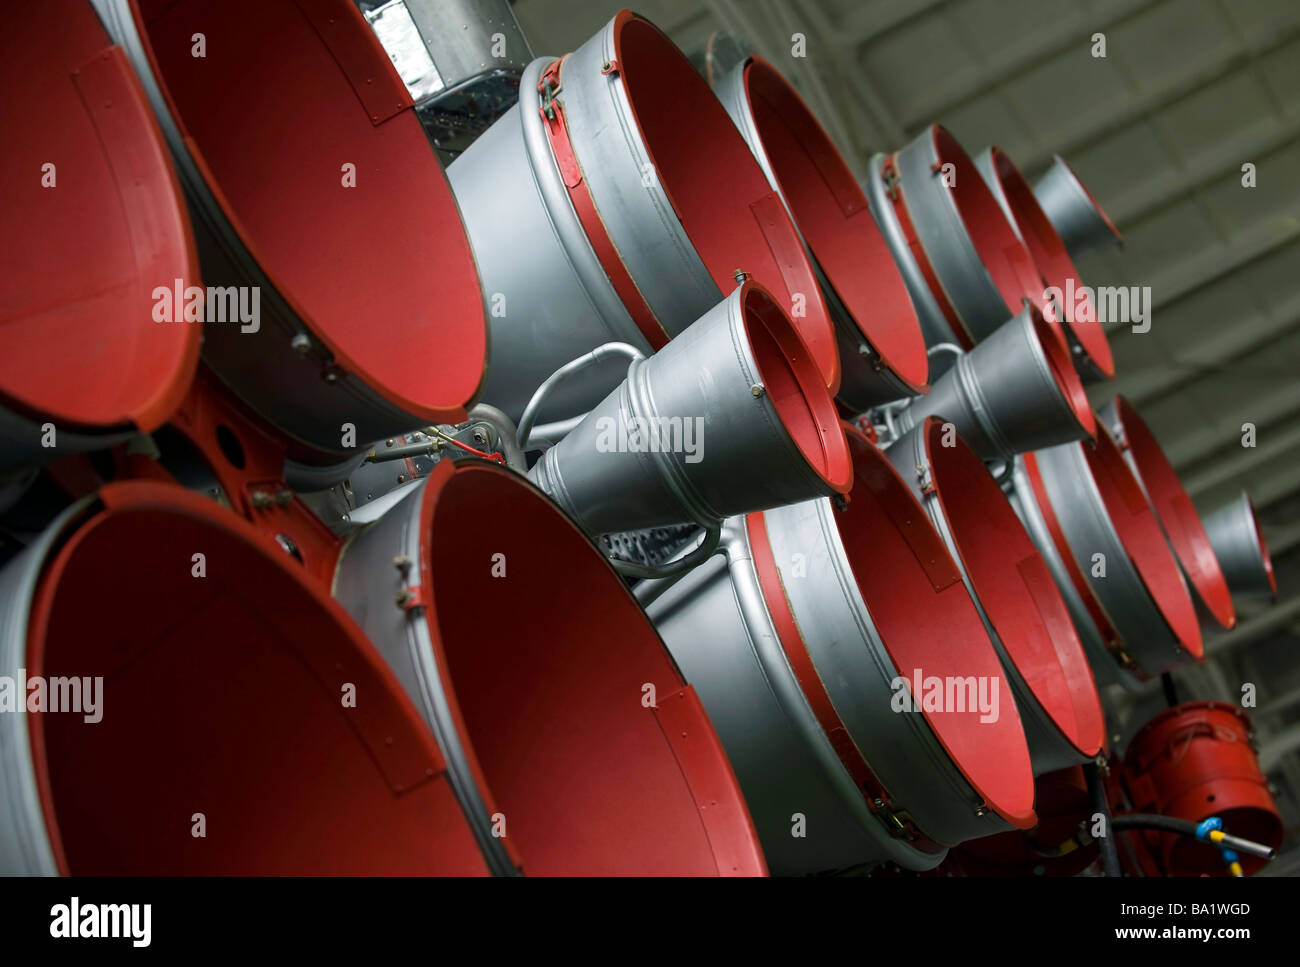 The boosters of the Soyuz TMA-14 spacecraft. - Stock Image